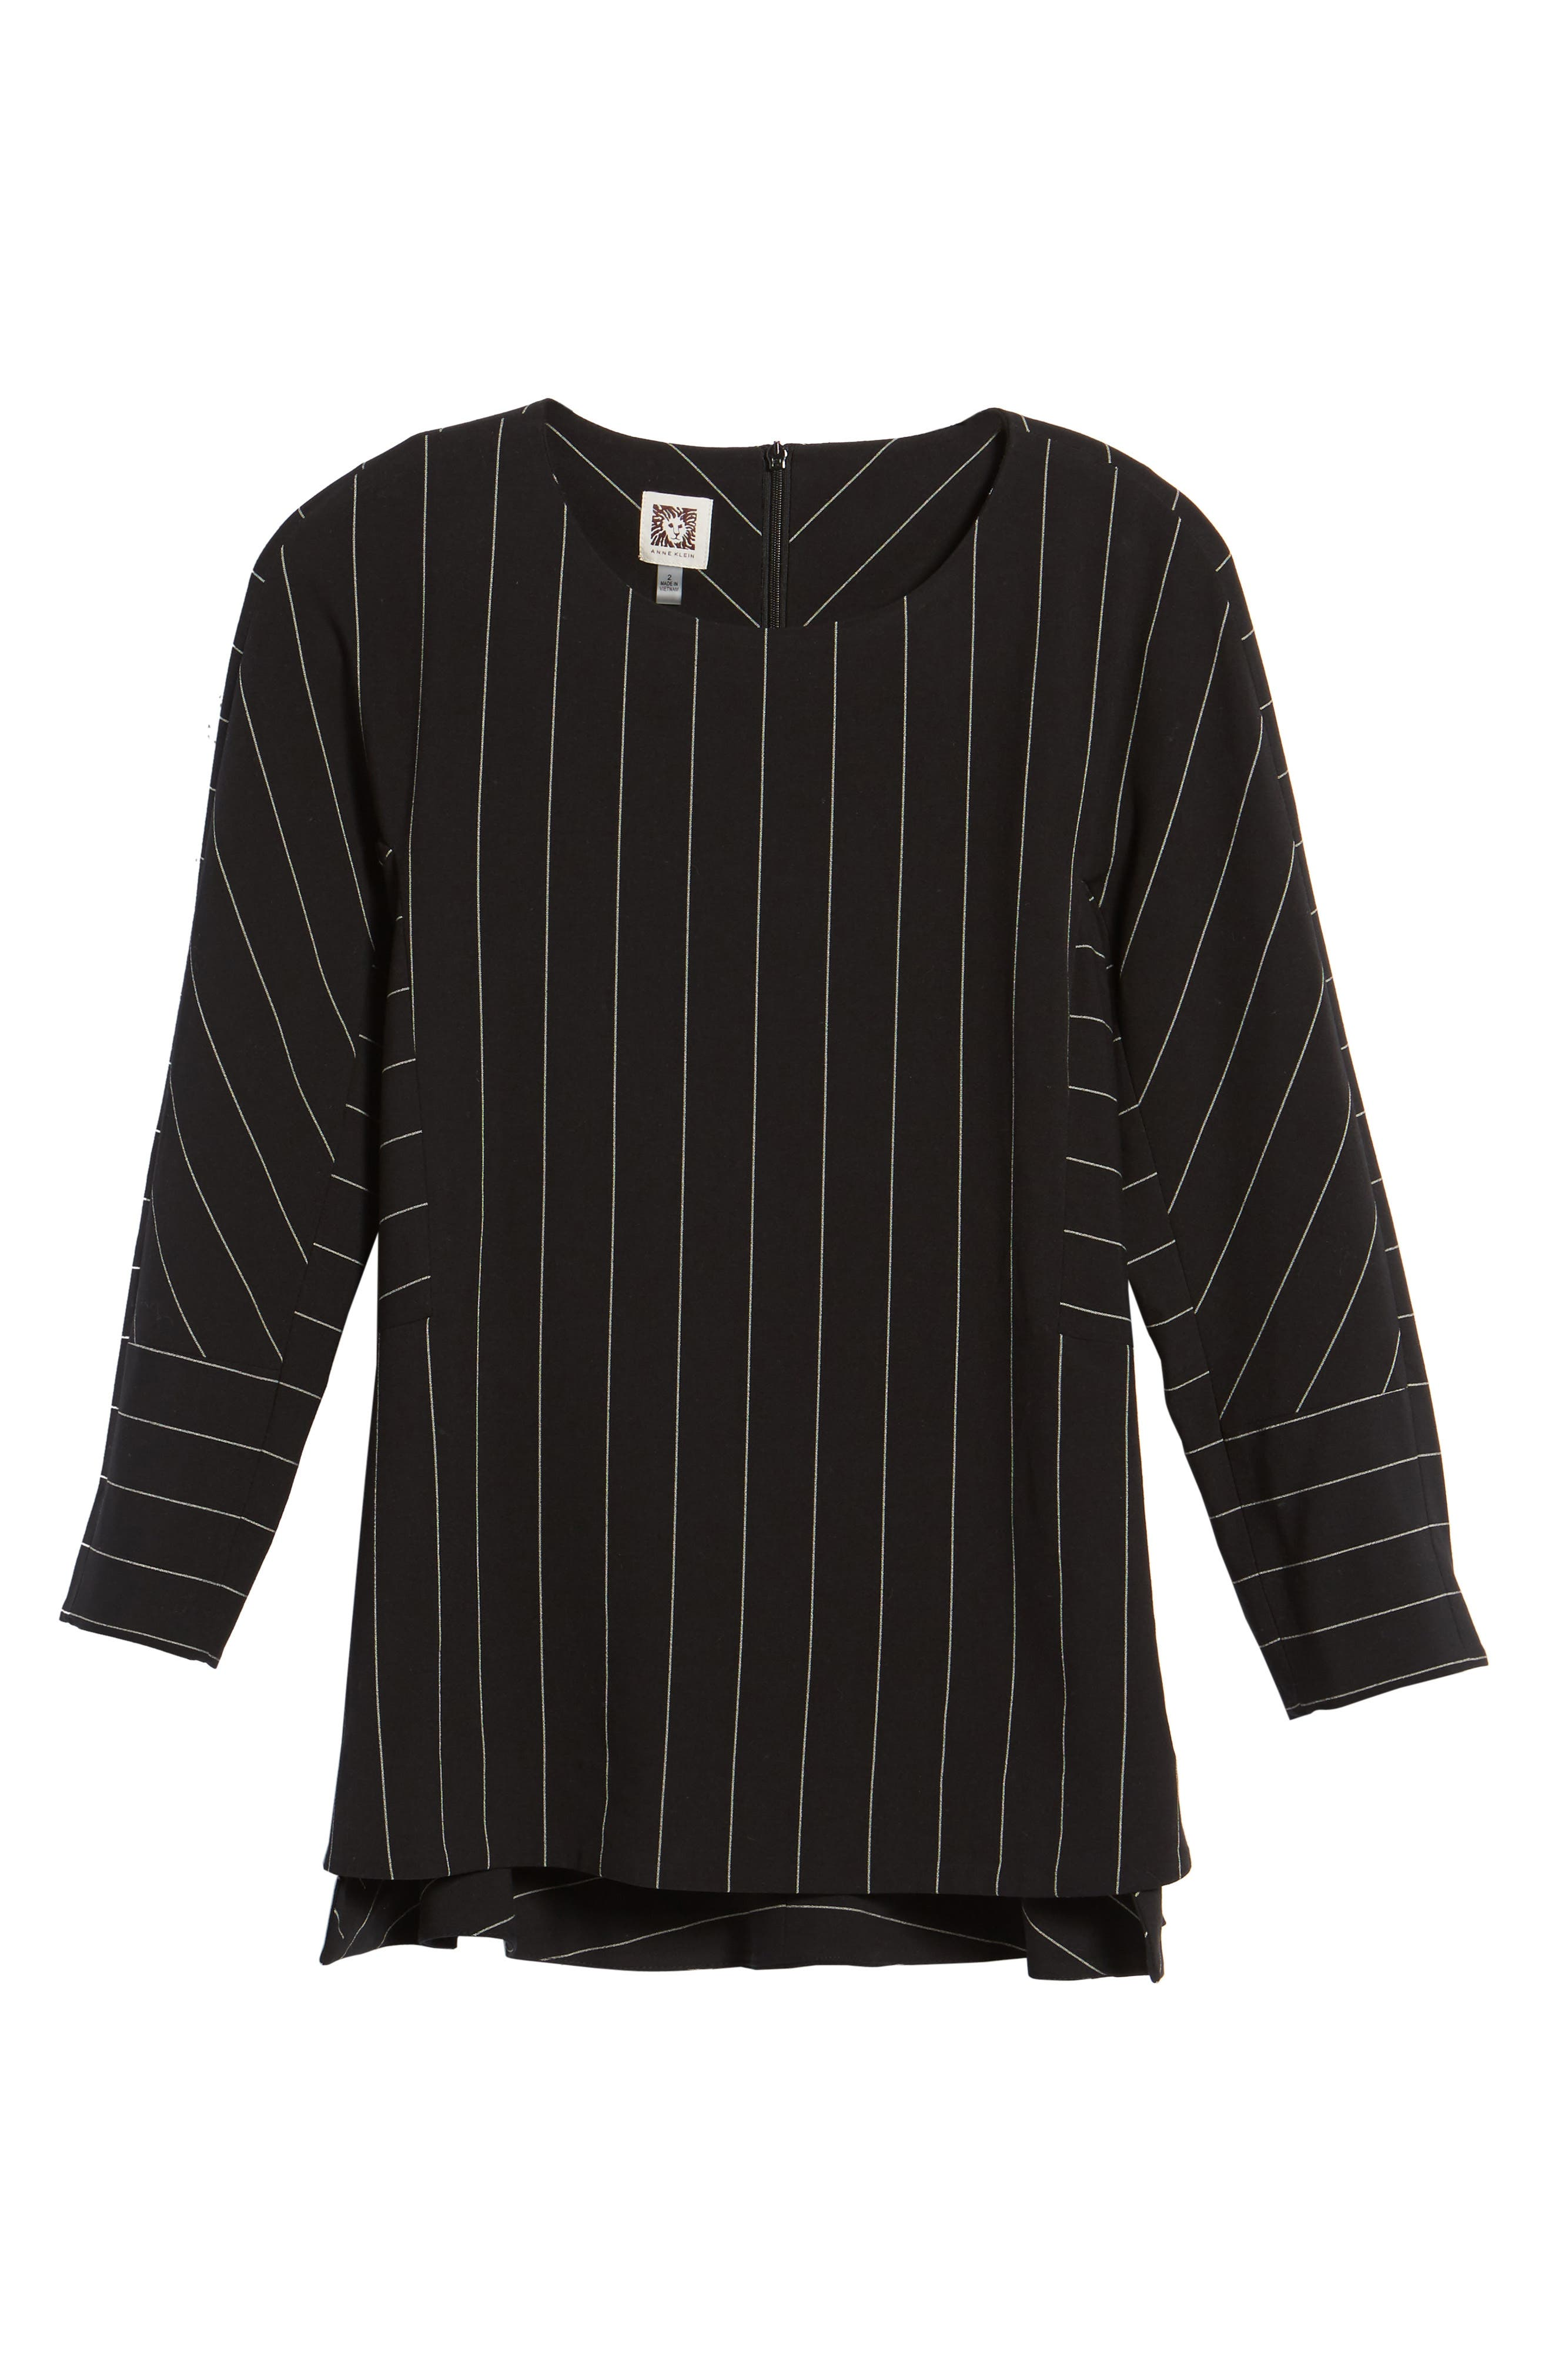 Pinstripe Blouse,                             Alternate thumbnail 6, color,                             001